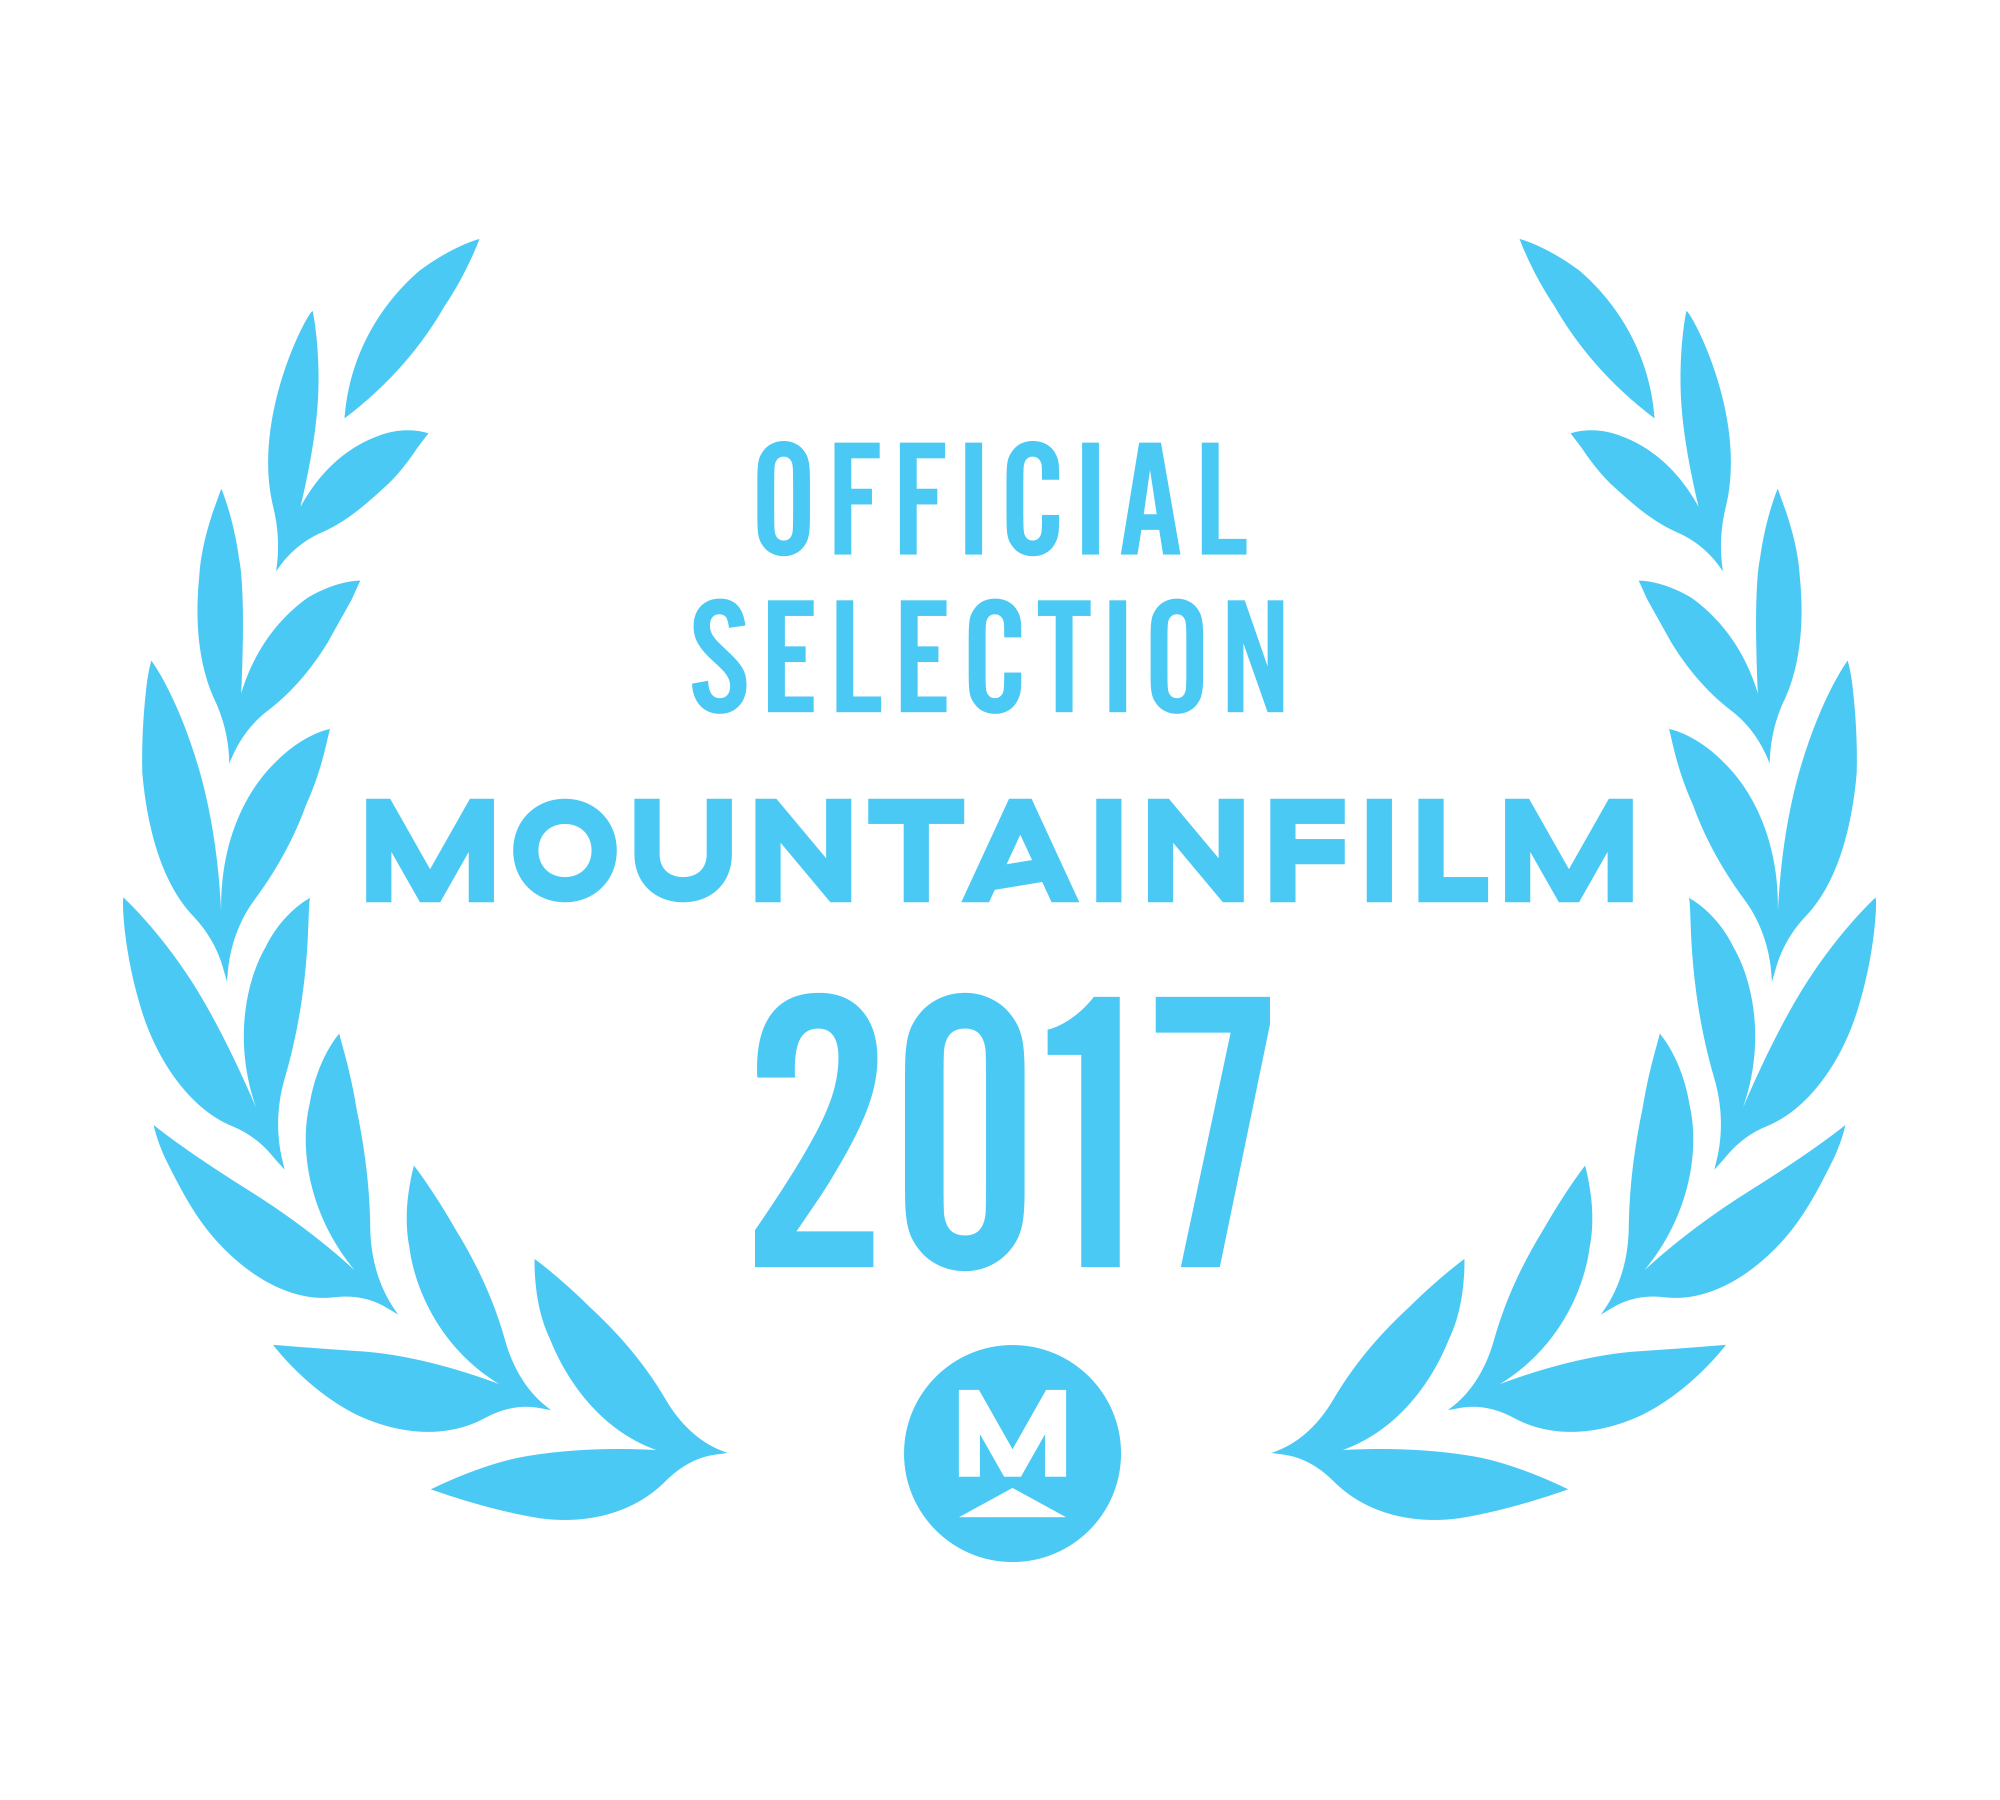 Mountainfilm 2017 Official Selection